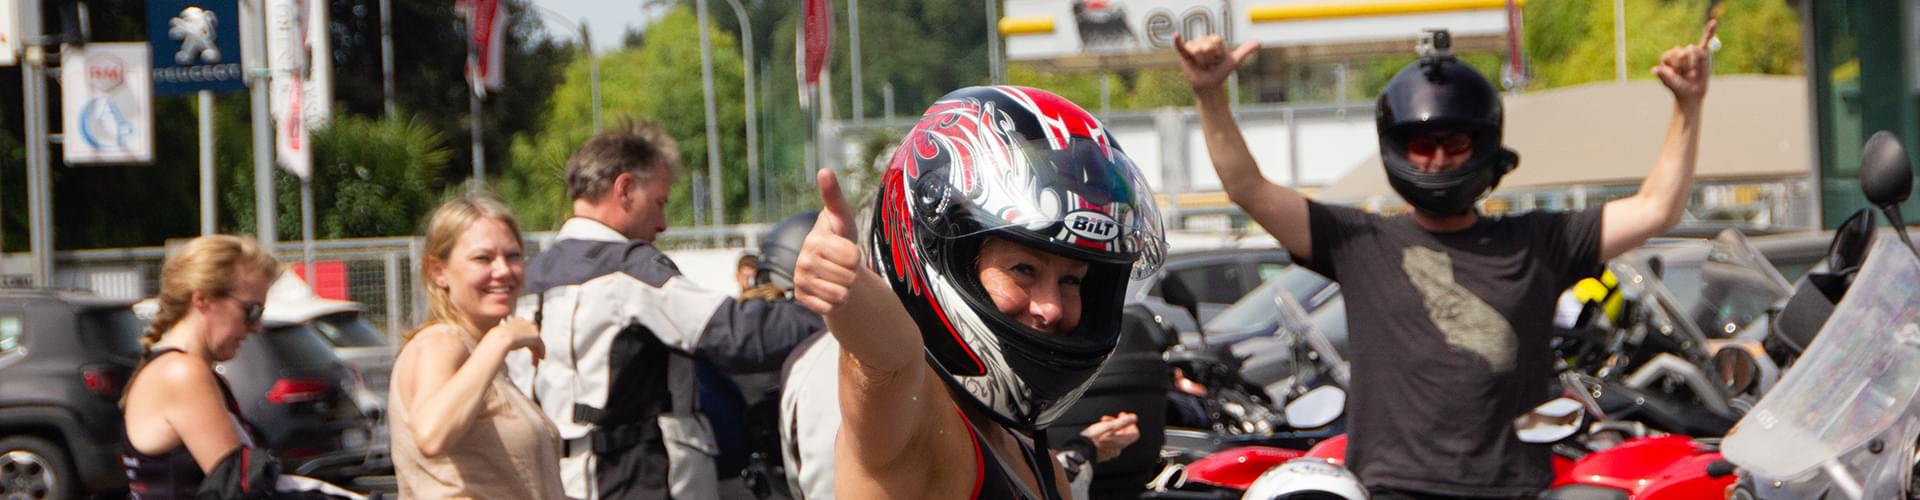 Riders happy with Hear The Road